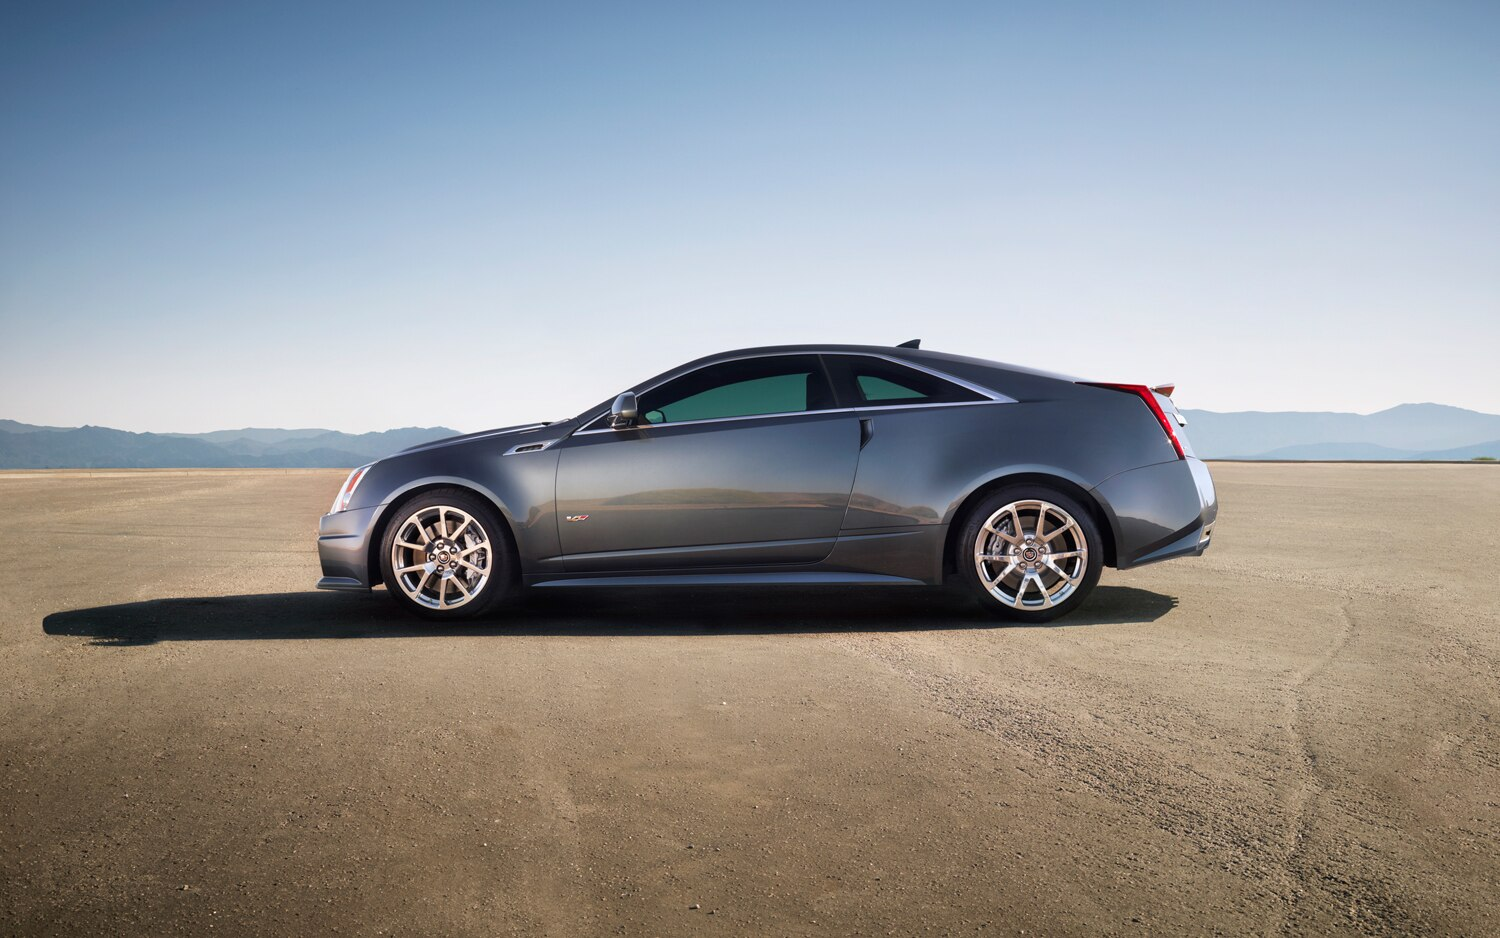 2011 Cadillac CTS-V Coupe - Side